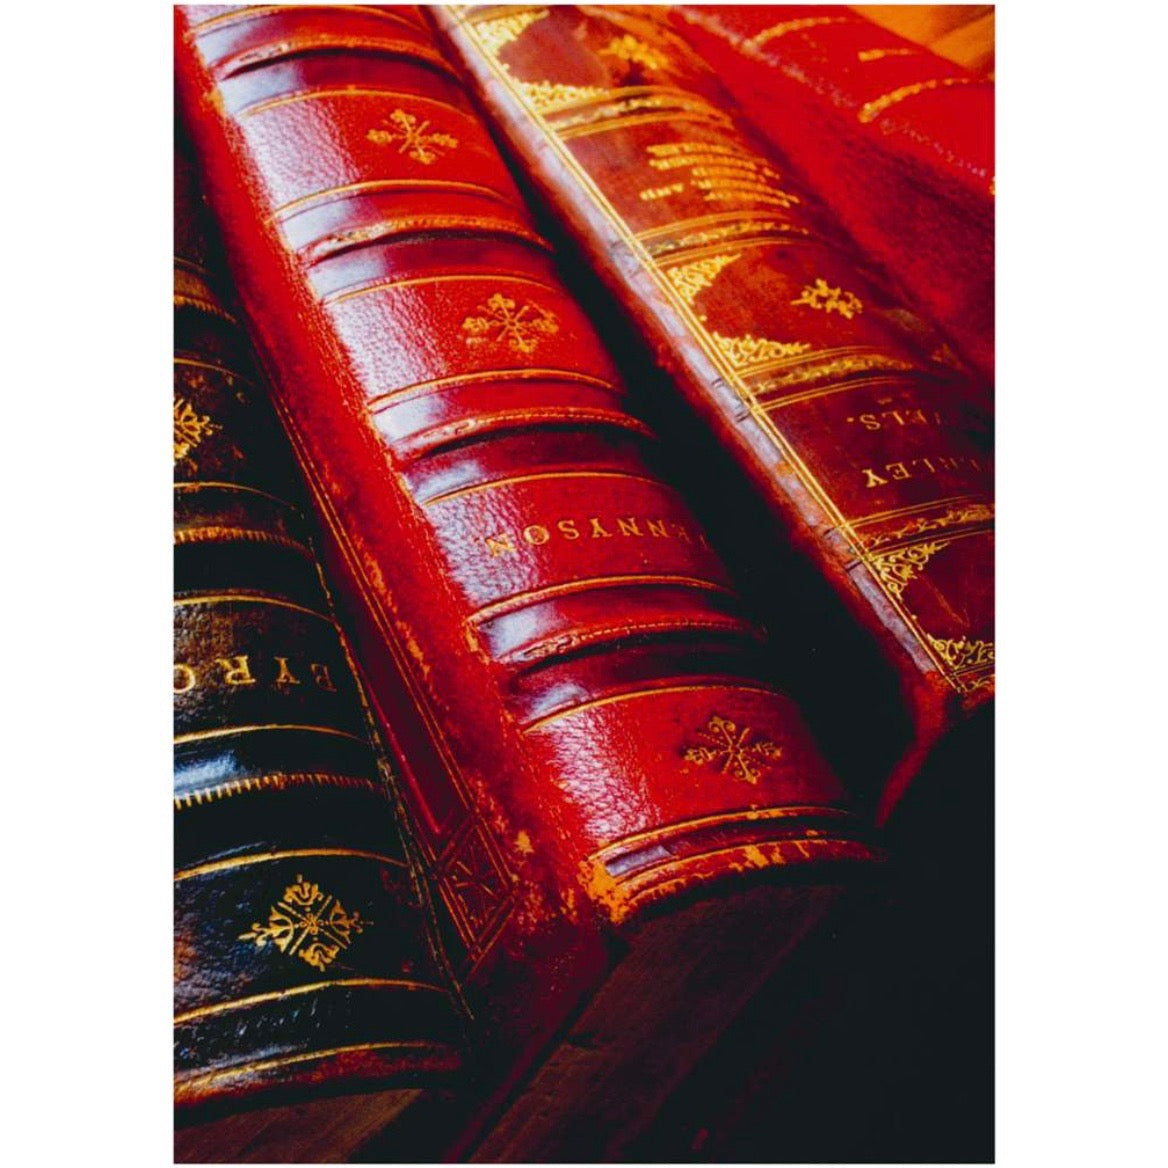 Antique Leather Books Greeting Card